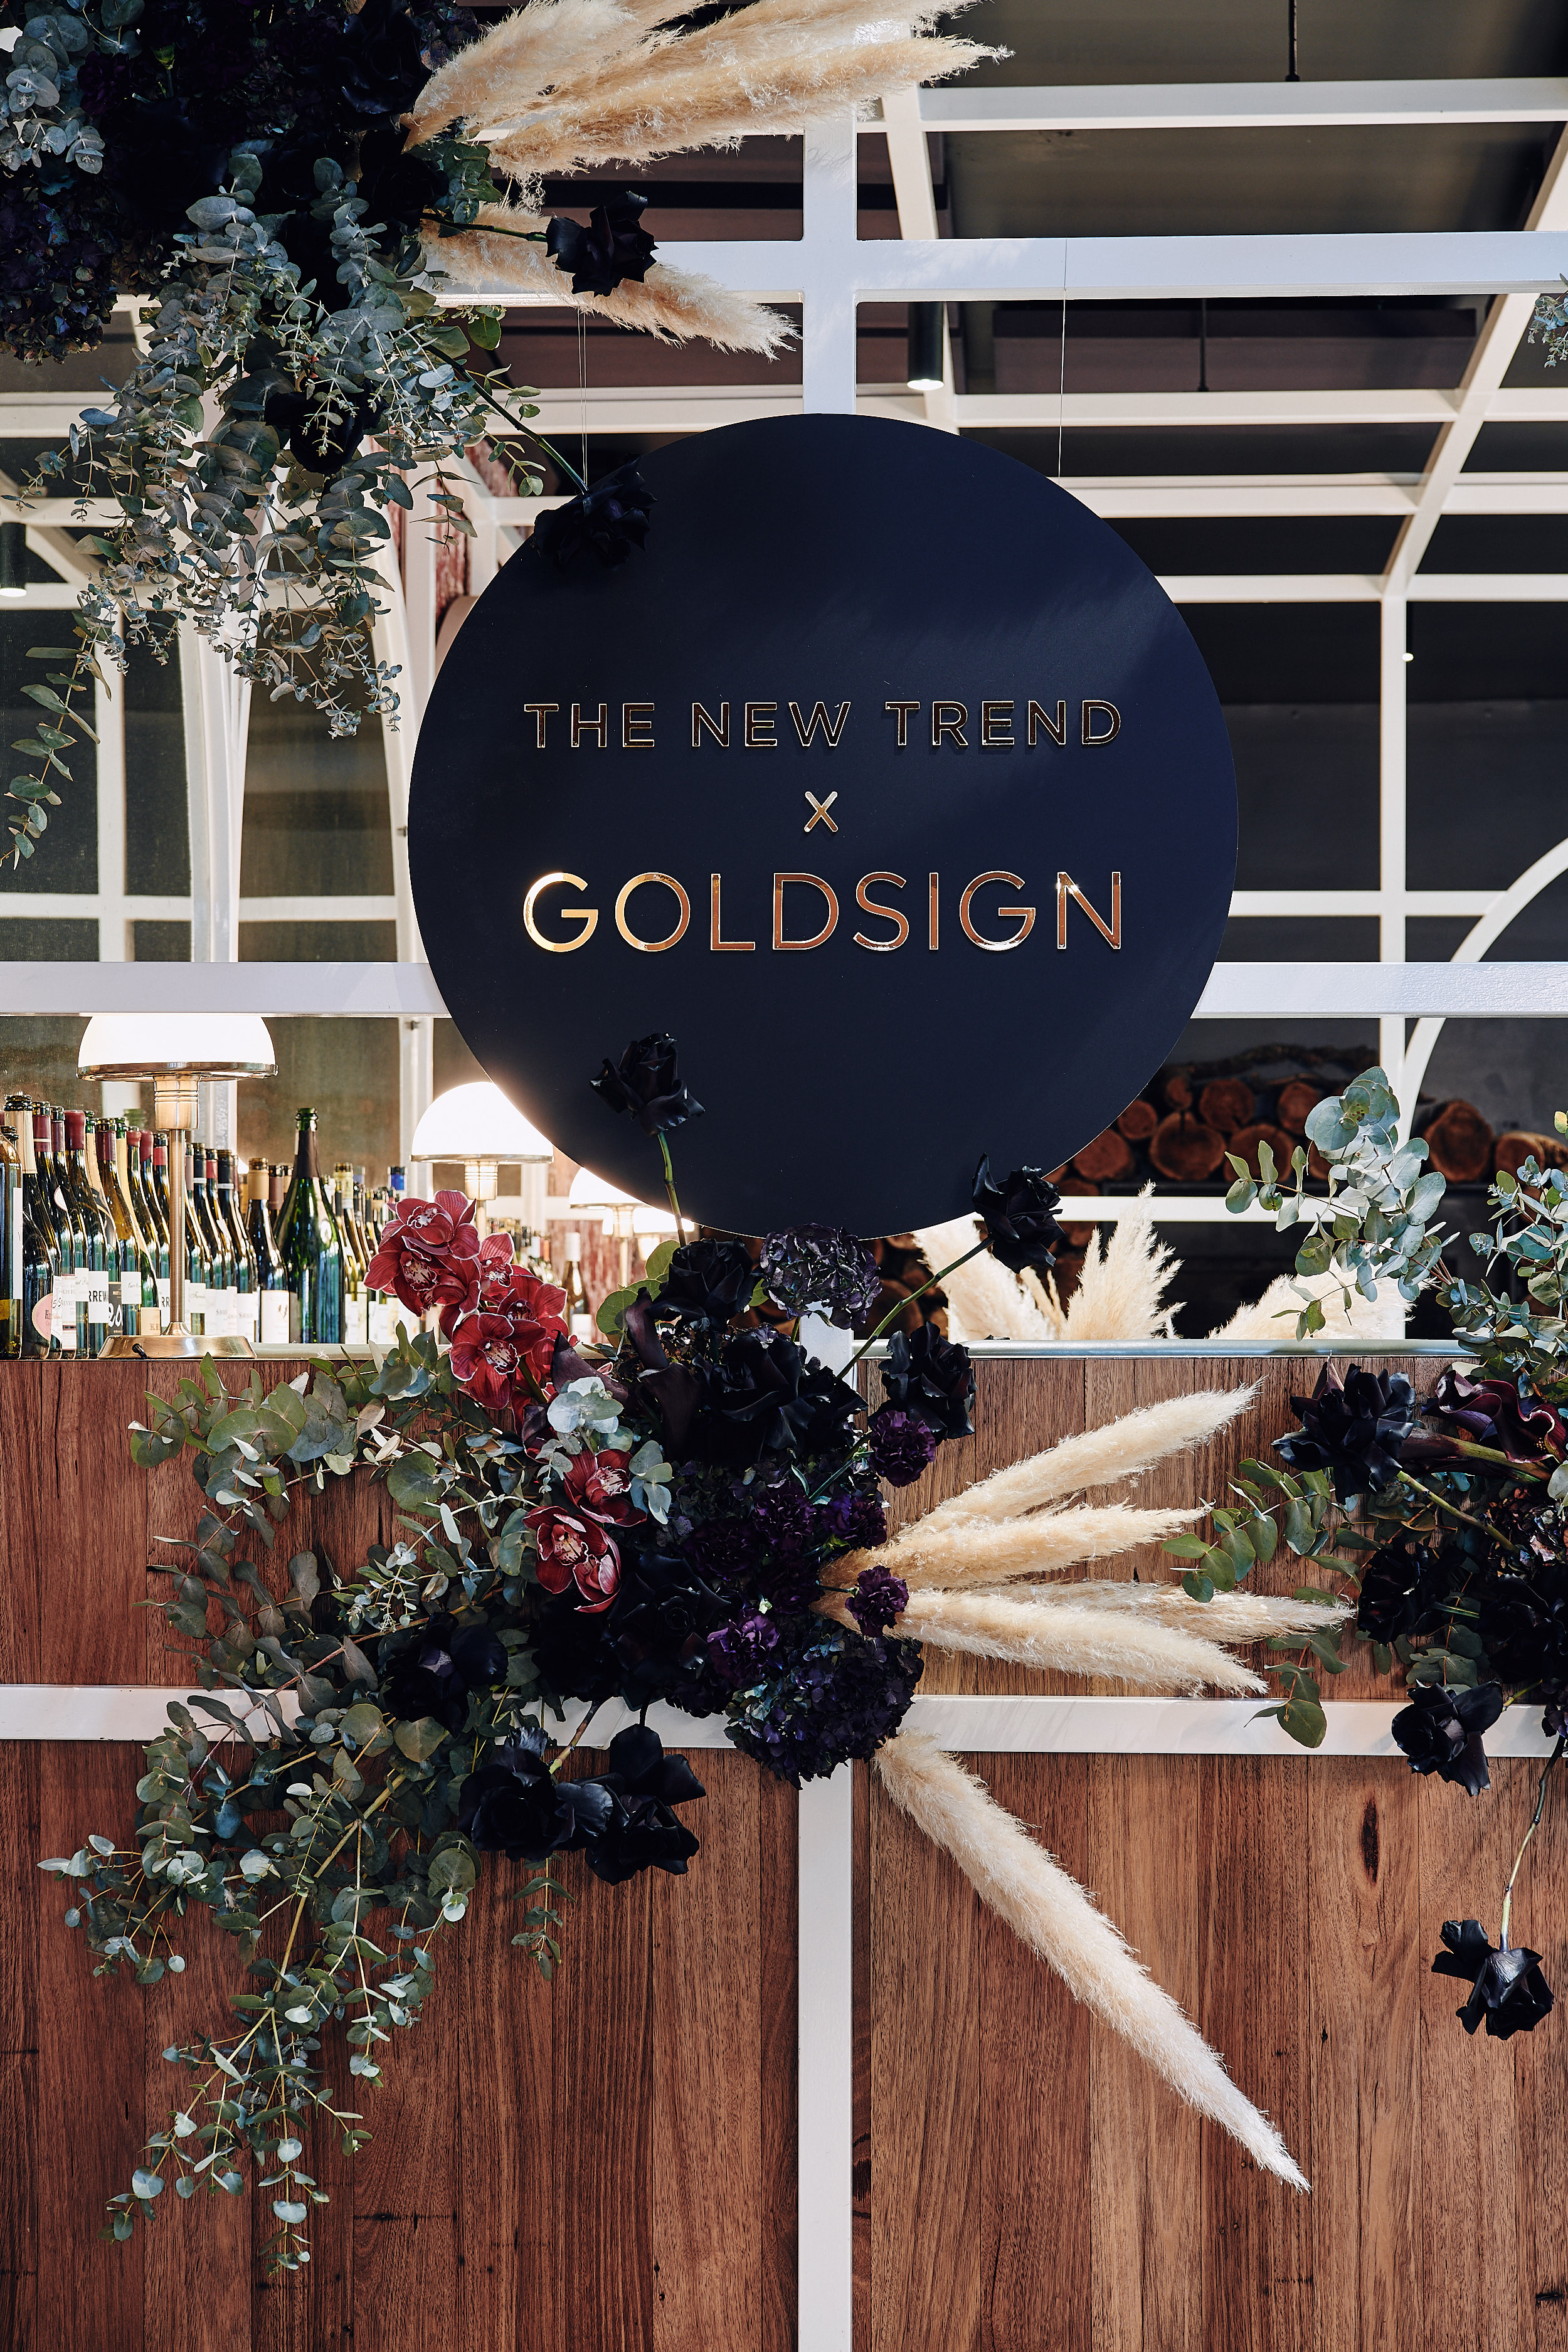 The New Trend x Goldsign at Neptune Food & Wine_by Simon Shiff_0 1_WEB JPEG 72DPI sRGB.jpg